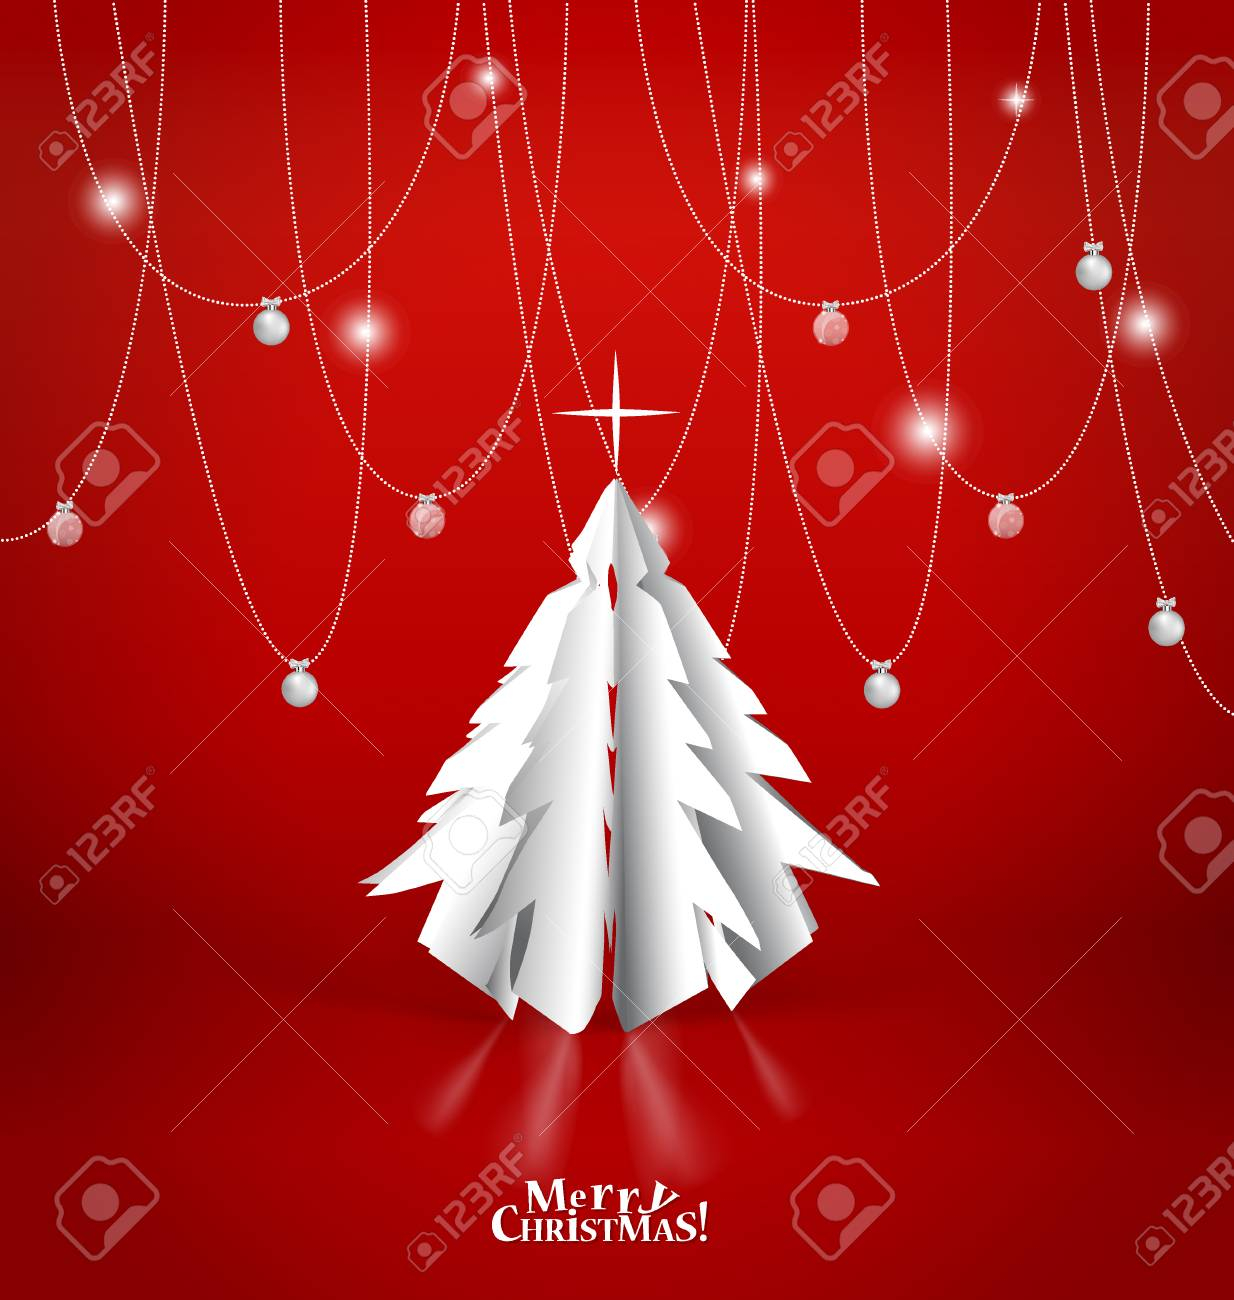 Merry Christmas greeting card with origami Christmas tree, vector illustration. - 49322054